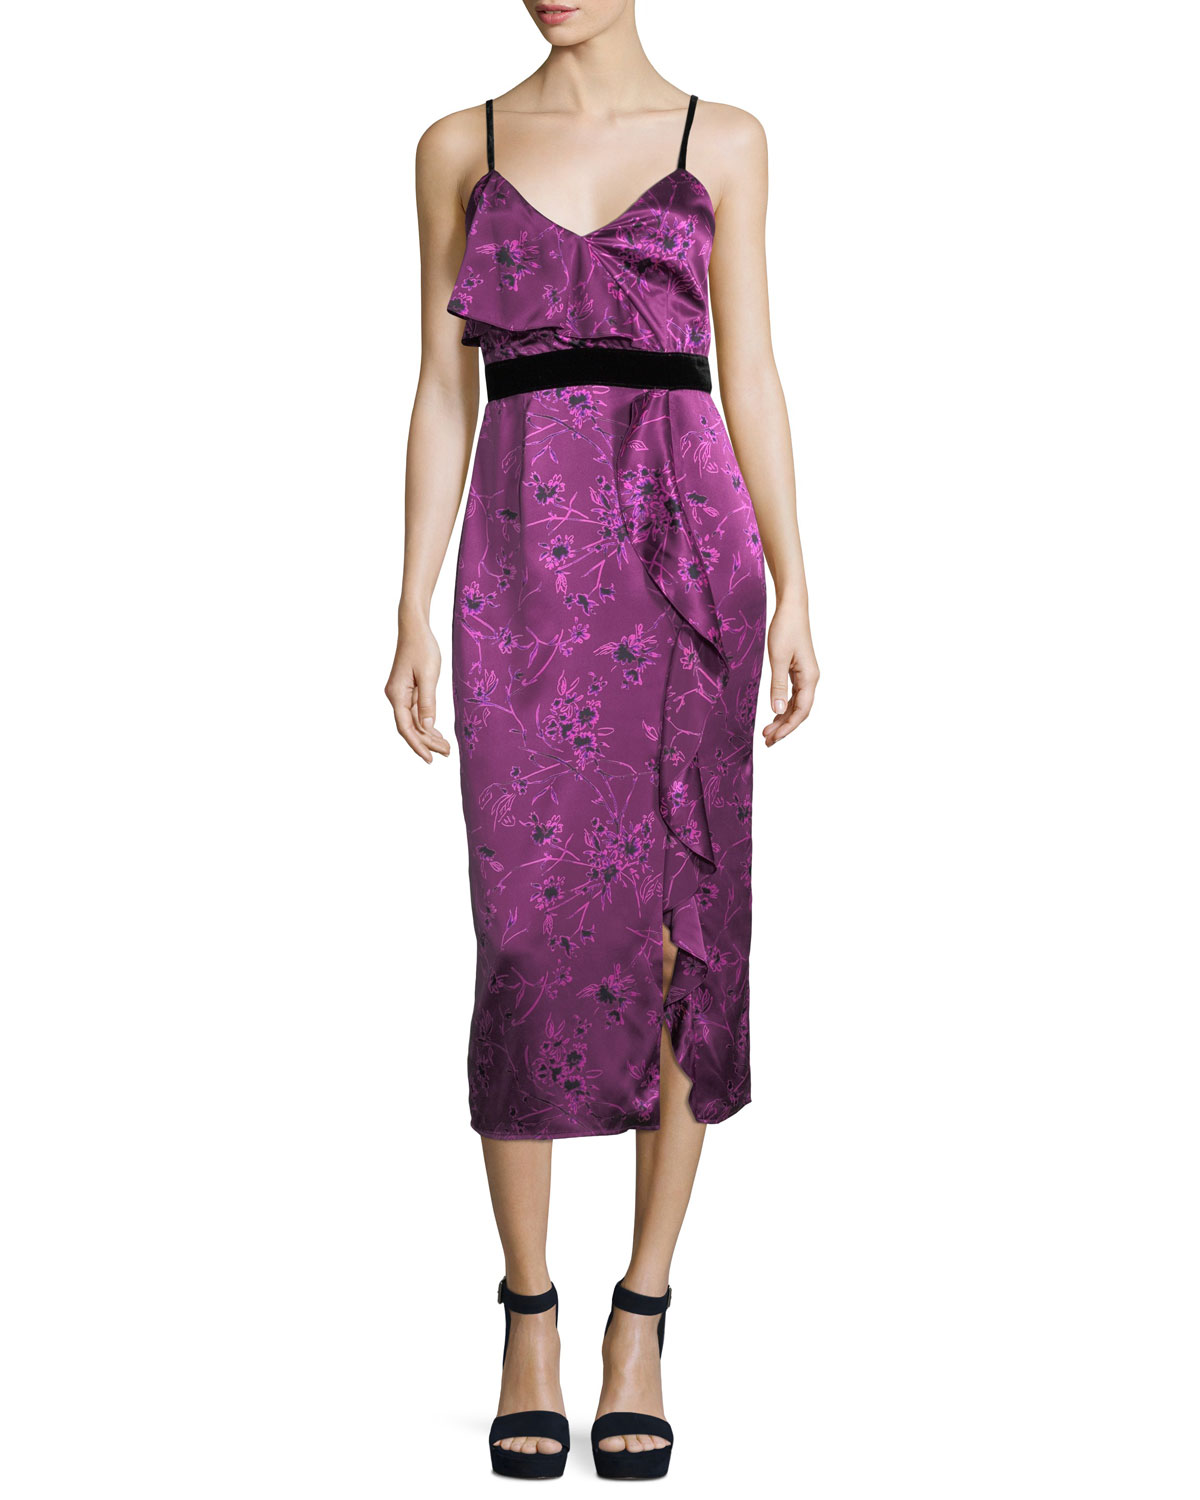 Lara Sleeveless Floral-Print Satin Cocktail Dress w/ Velvet Trim